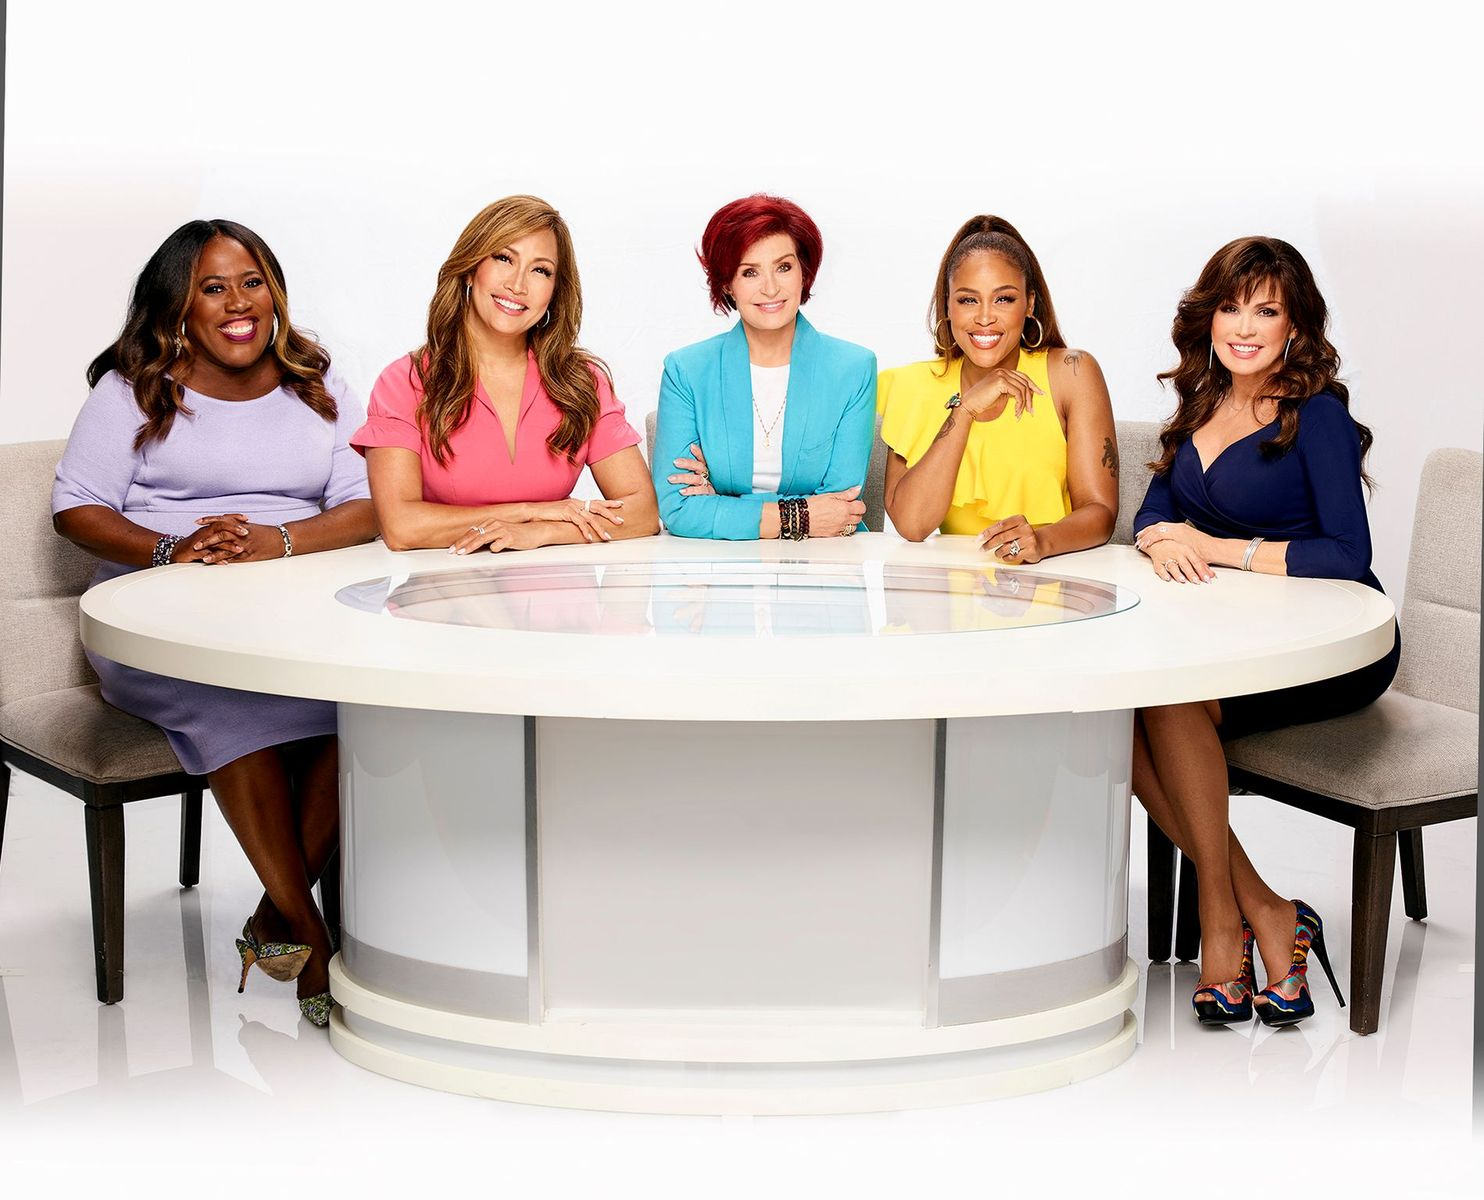 """Sheryl Underwood, Carrie Ann Inaba, Sharon Osbourne, Eve Cooper, and Marie Osmond, hosts of """"The Talk"""" posing for a photo on September 04, 2019 